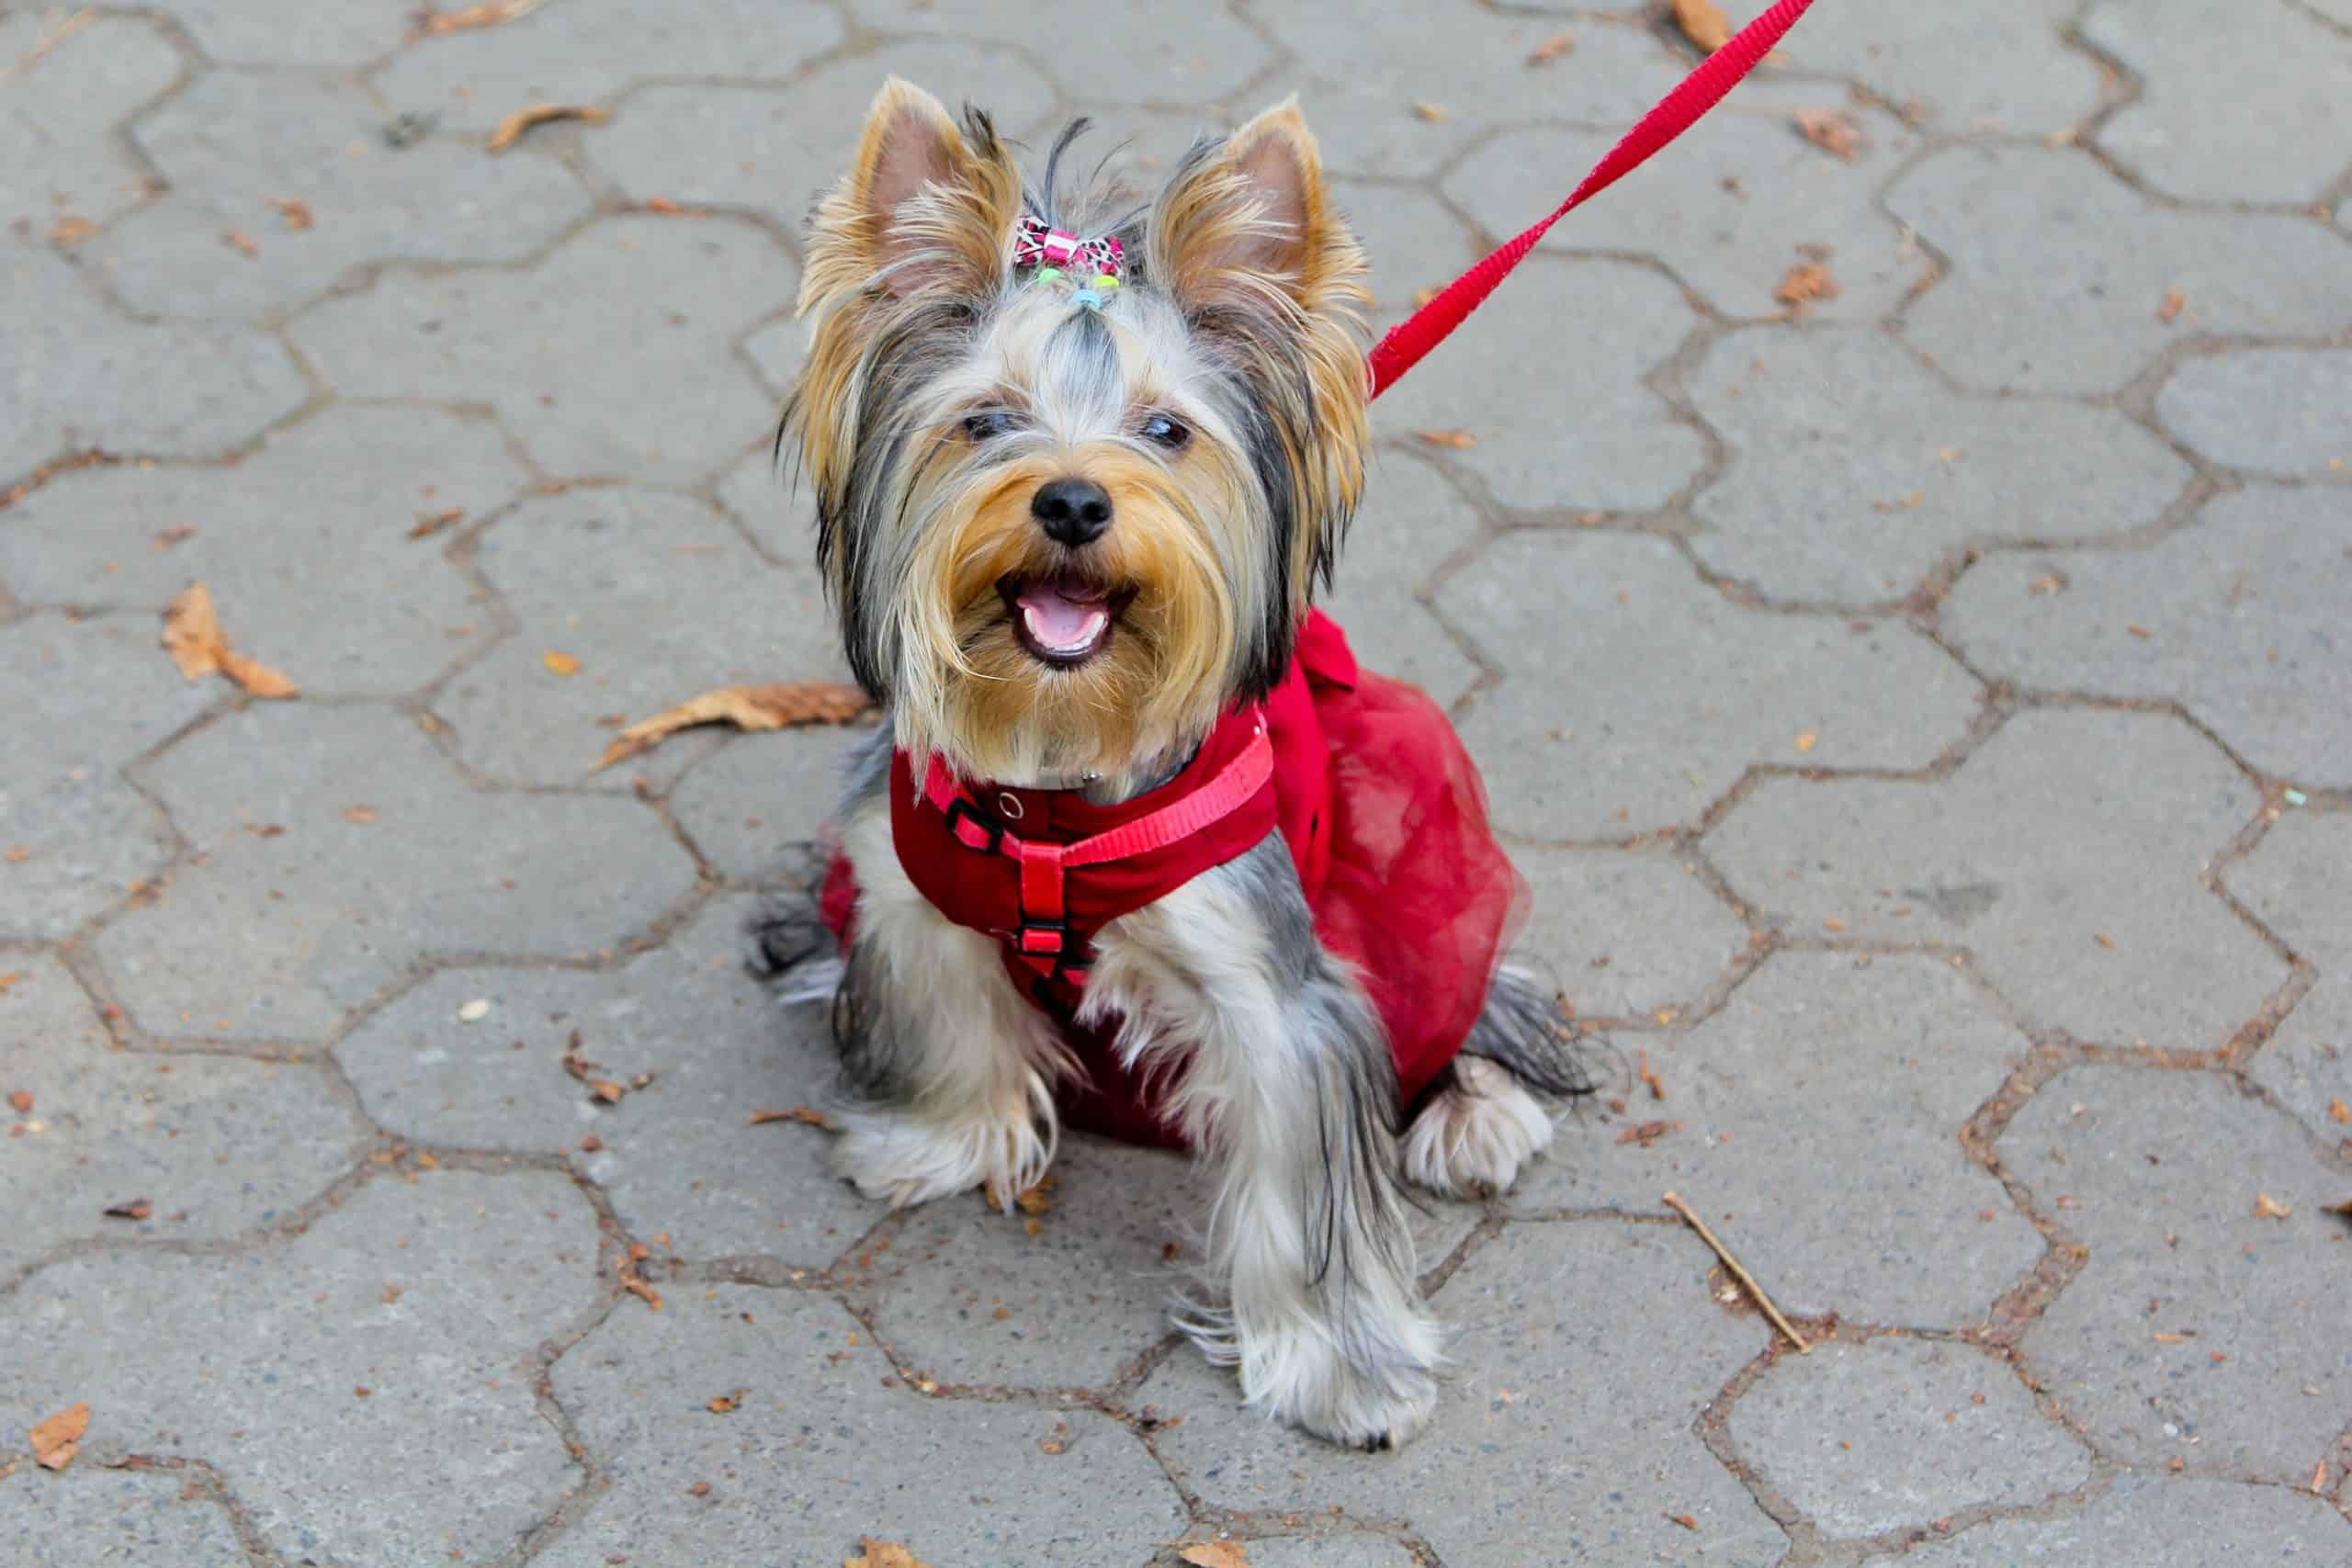 Happy Yorkshire Terrier goes for a walk. Short walks or quick play sessions keep Yorkies happy and healthy.